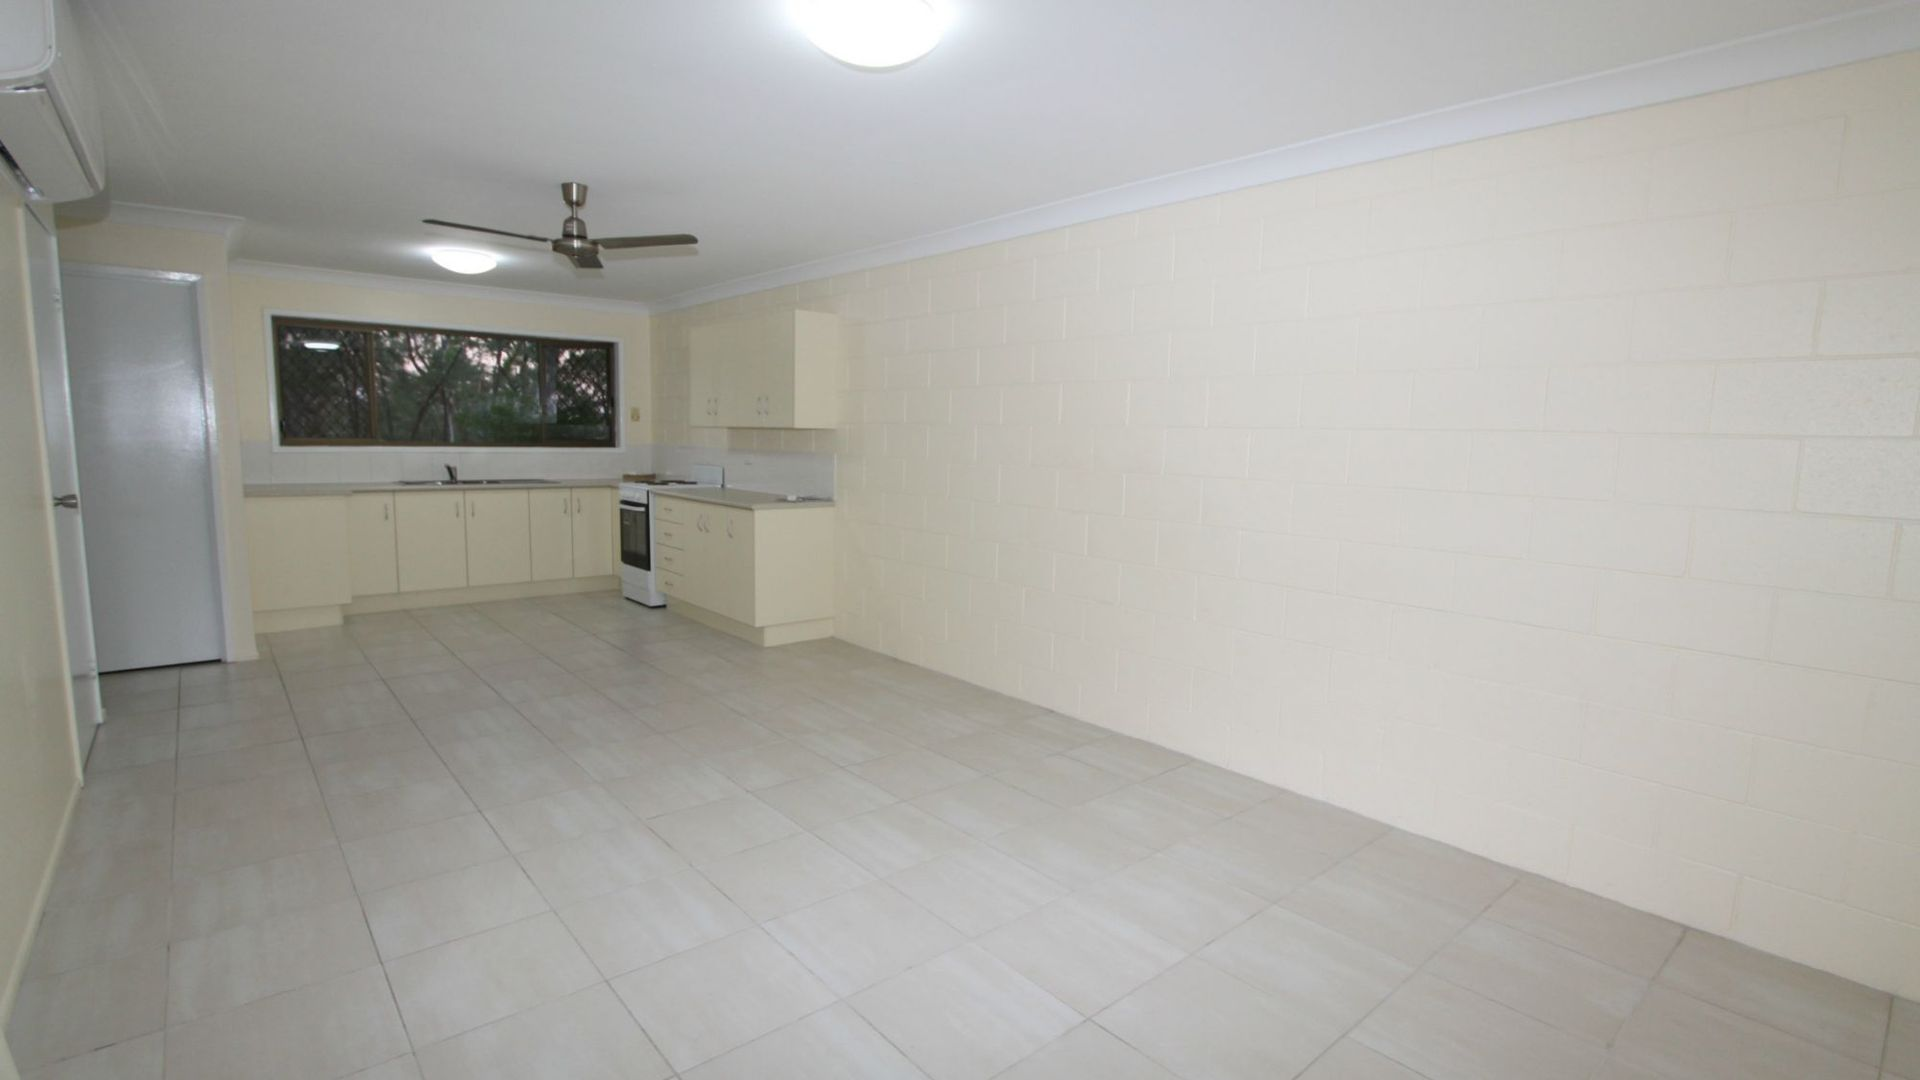 2/7 Snell Street, Koongal QLD 4701, Image 2